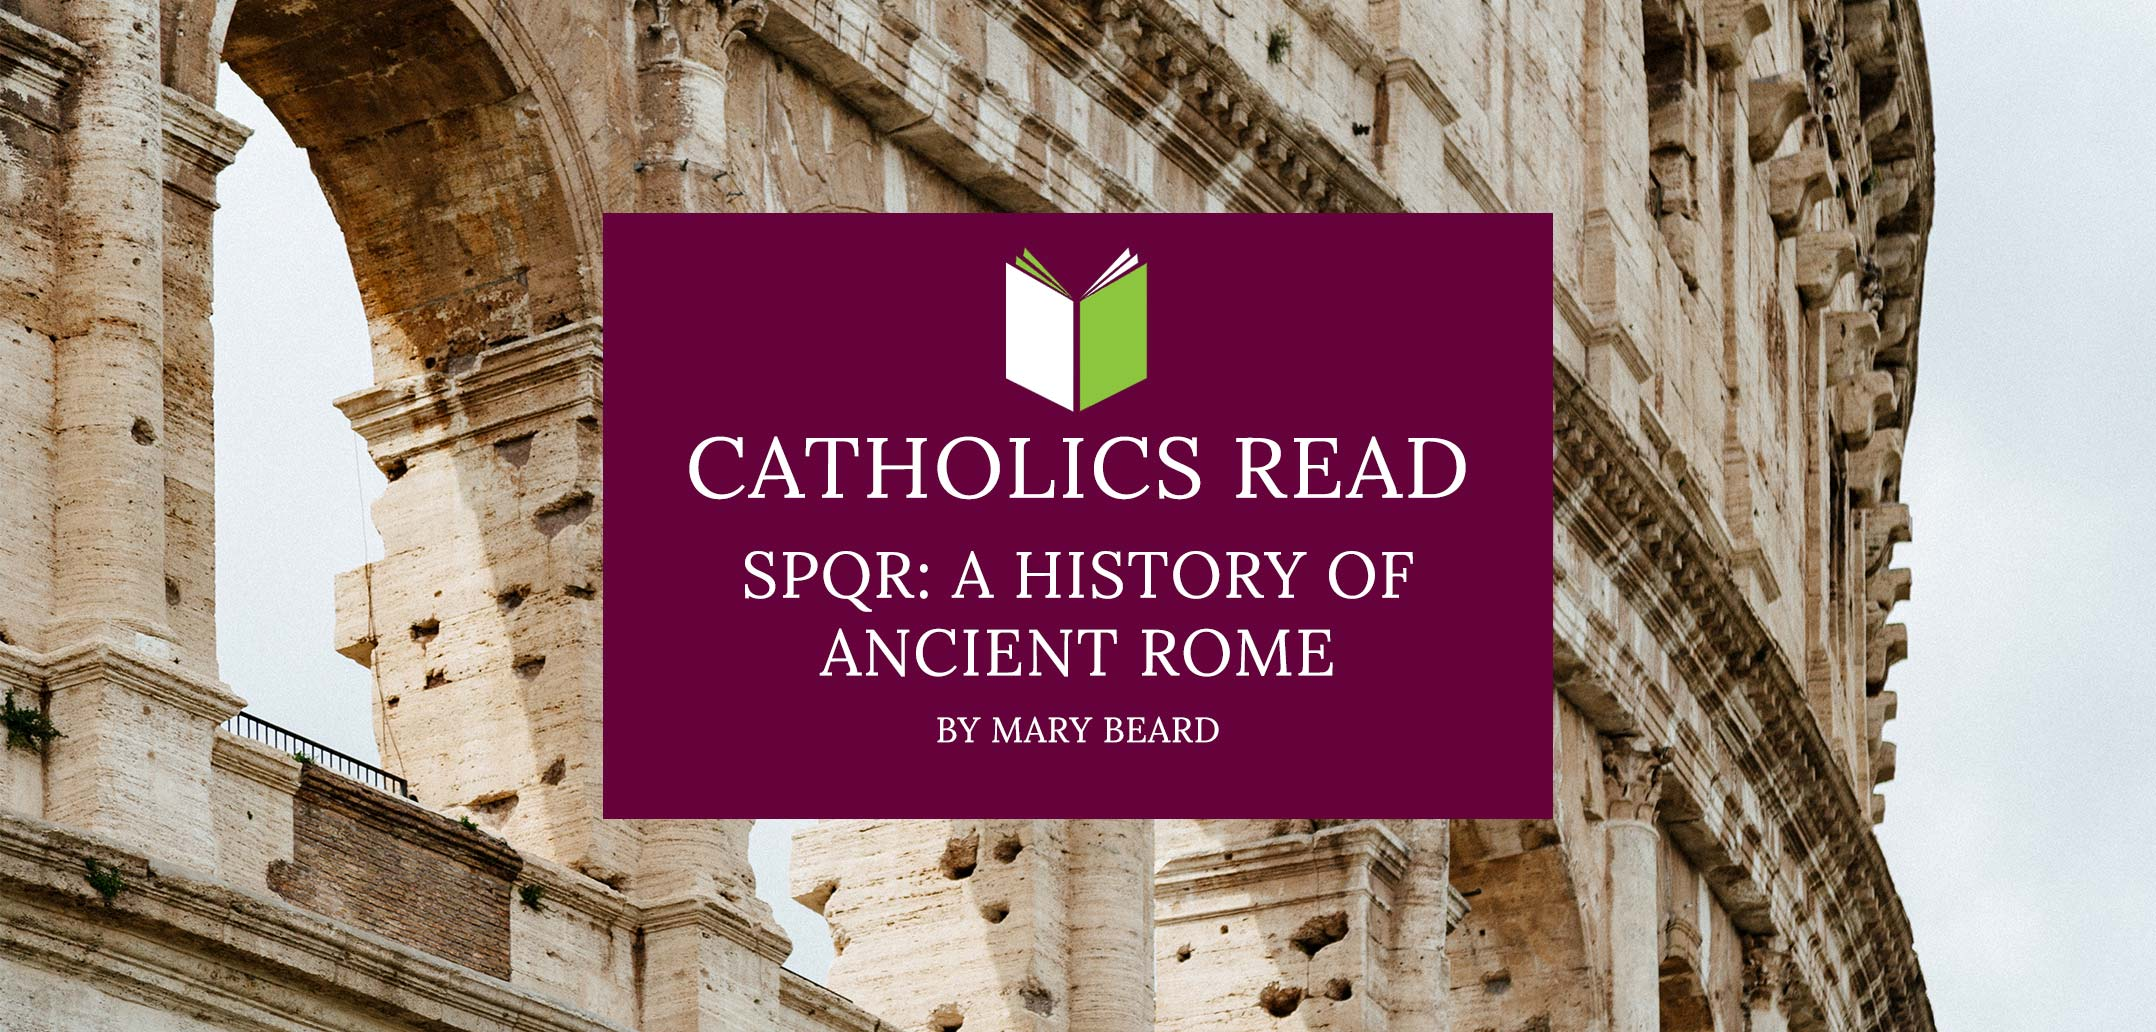 Catholics Read SPQR: A History of Ancient Rome